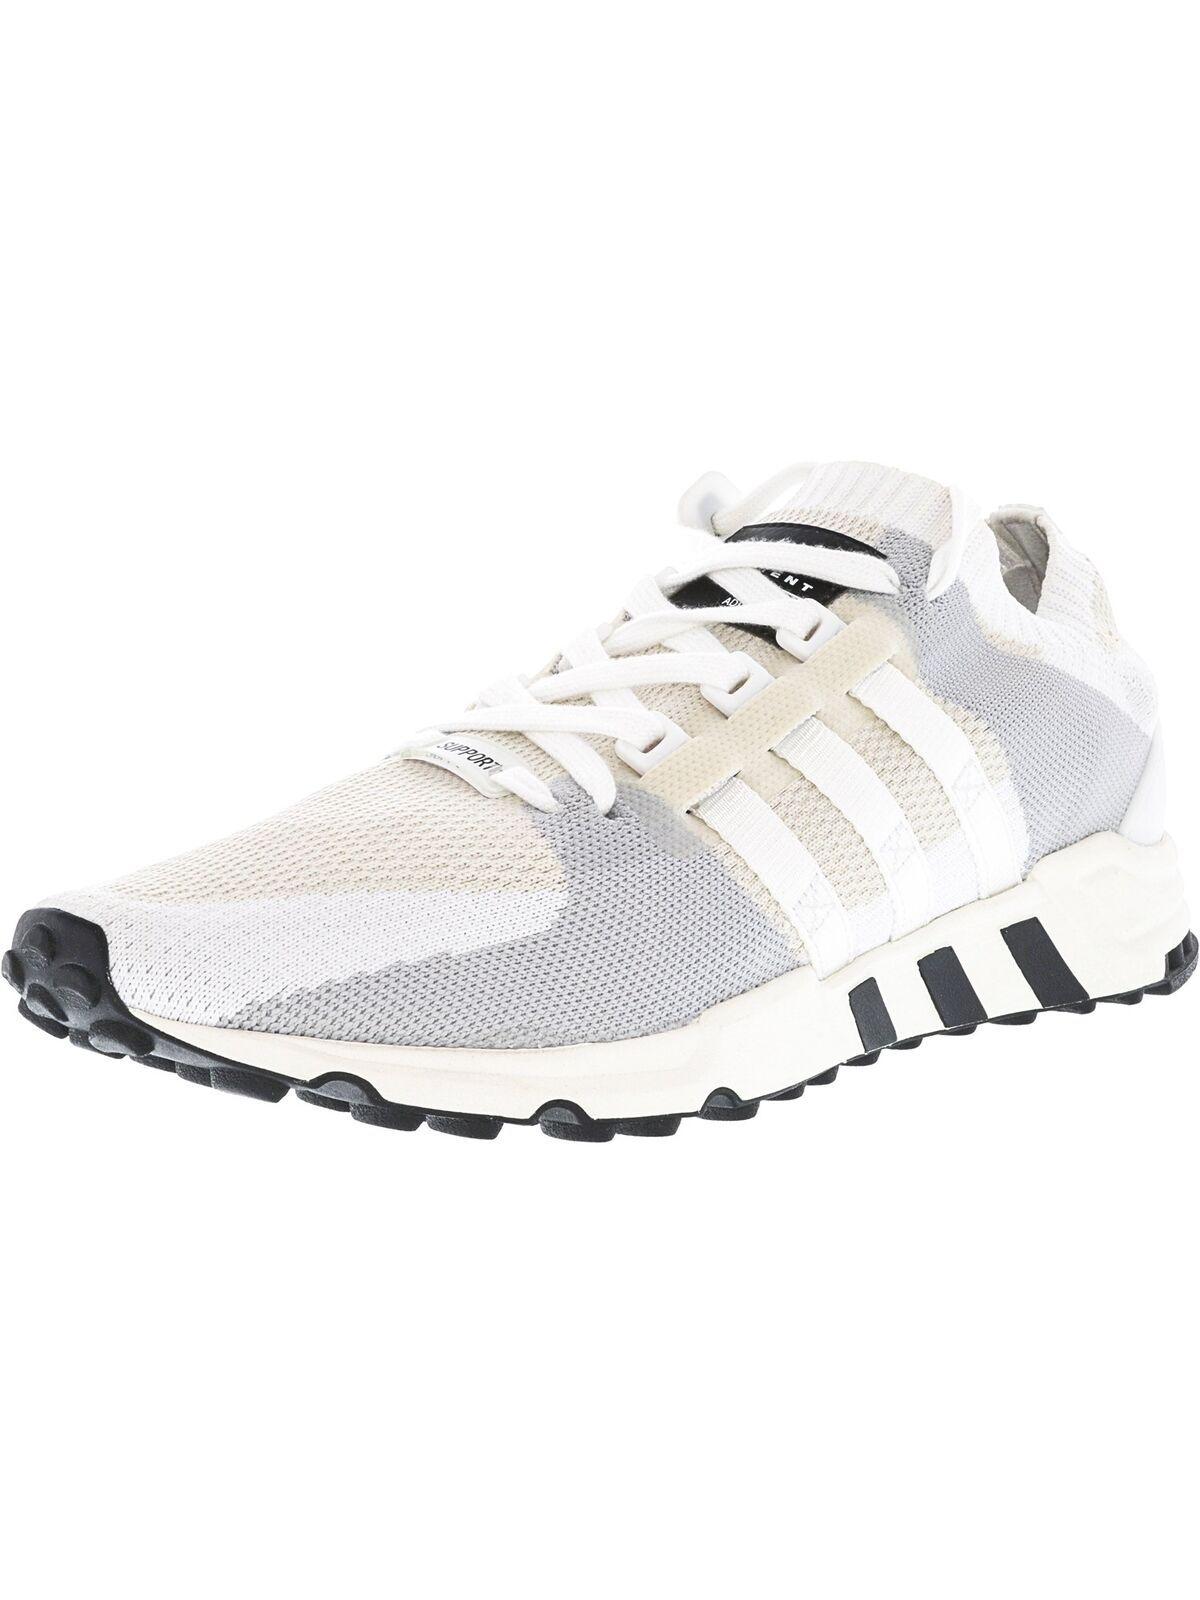 Adidas Men's Eqt Support Ankle-High Running shoes